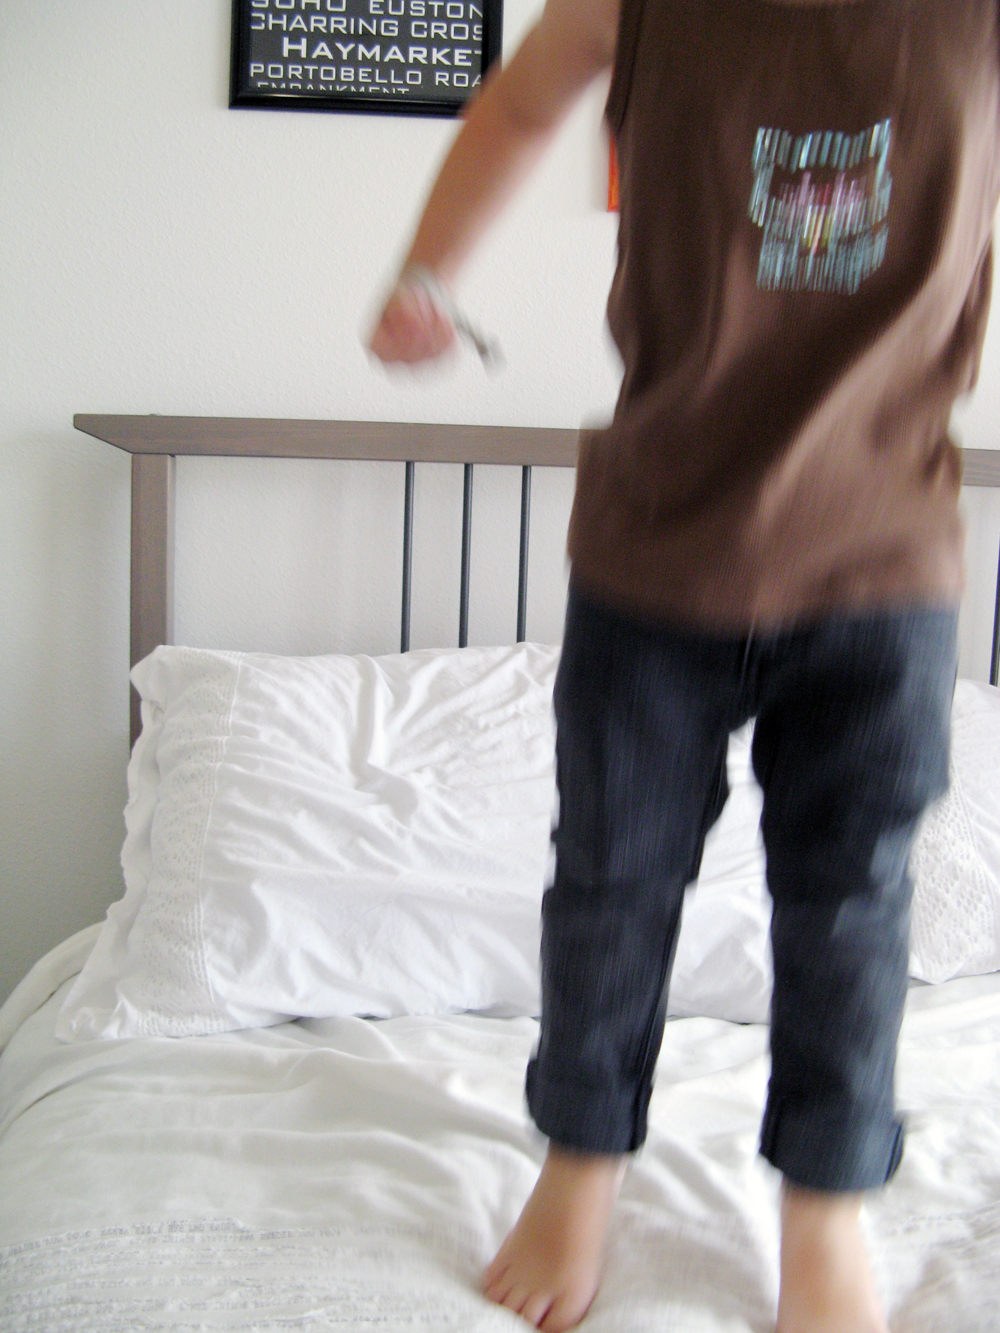 6a - Jumping on the Bed - Oaxacaborn